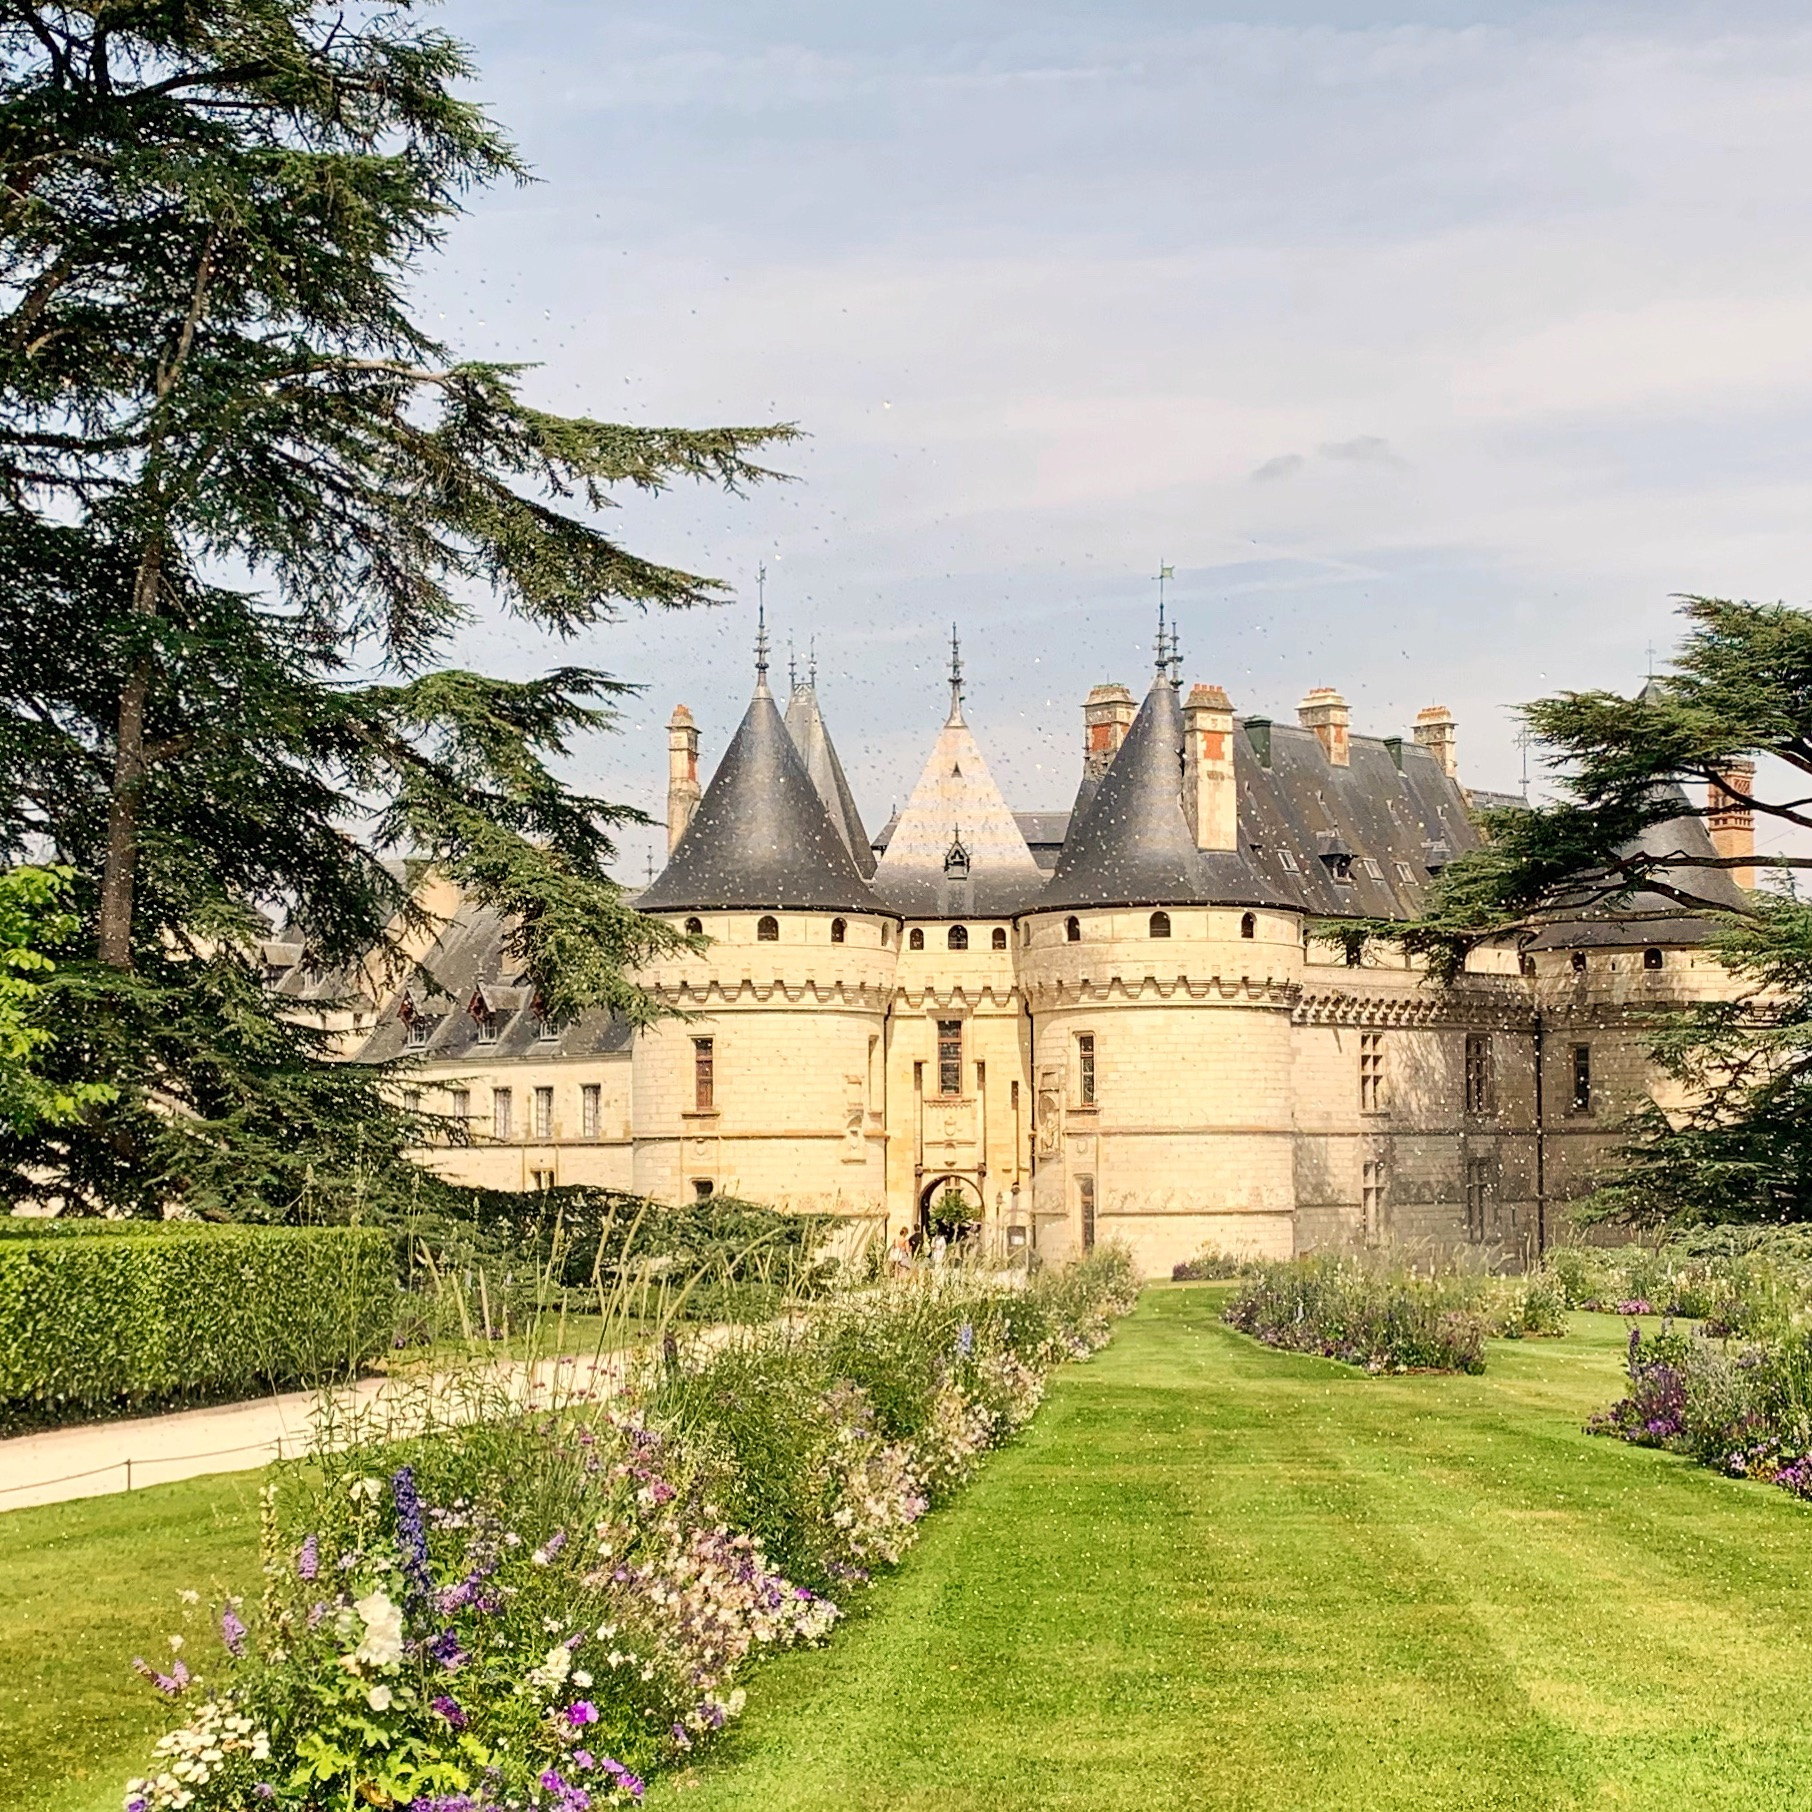 A Design Lover's Guide to France's Loire Valley (Architectural Digest)   More than 500 exhibitions, concerts, and performances are planned for this year—a great time to visit this region famous for its Renaissance chateaus